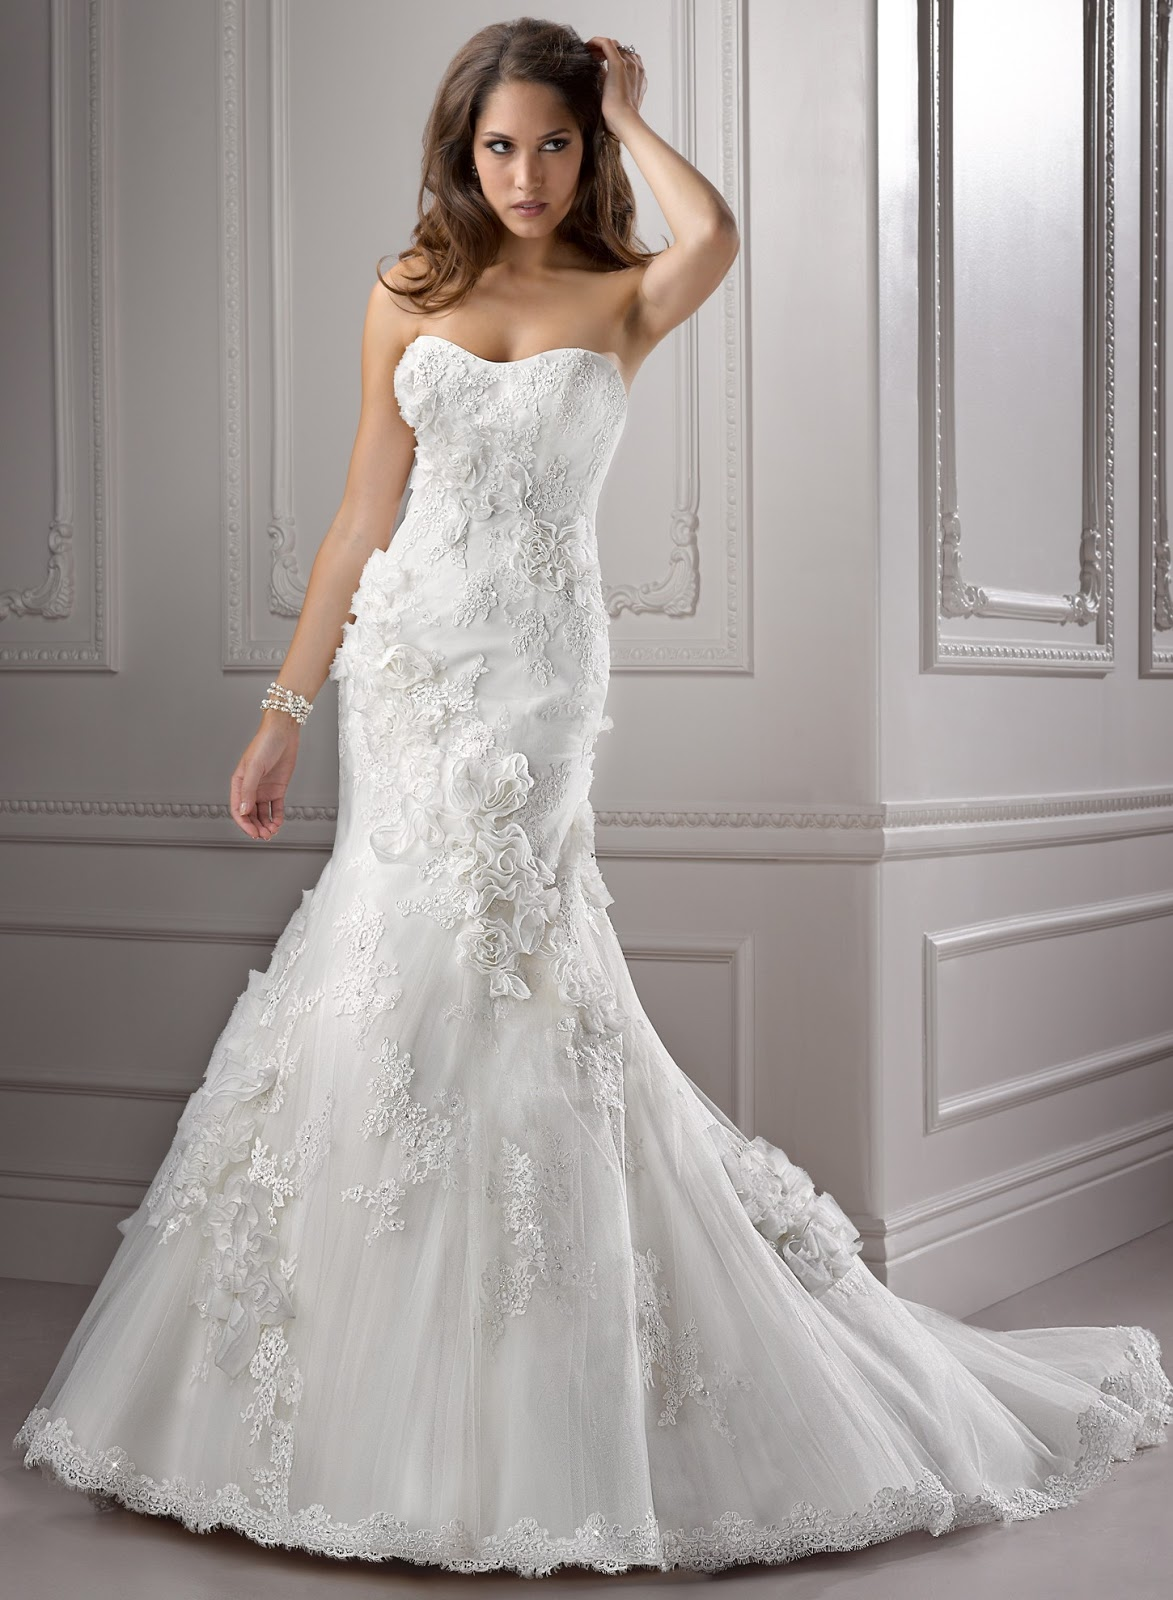 2016 Mermaid Wedding Dresses, Lace Mermaid Wedding Dresses 2015, Cheap Mermaid Dresses, Bling Mermaid Wedding Dress, Mermaid Wedding Gowns 2015, Long Sleeve Mermaid Wedding Dress, Sexy Mermaid Wedding Dresses, Wedding Dress Mermaid Style